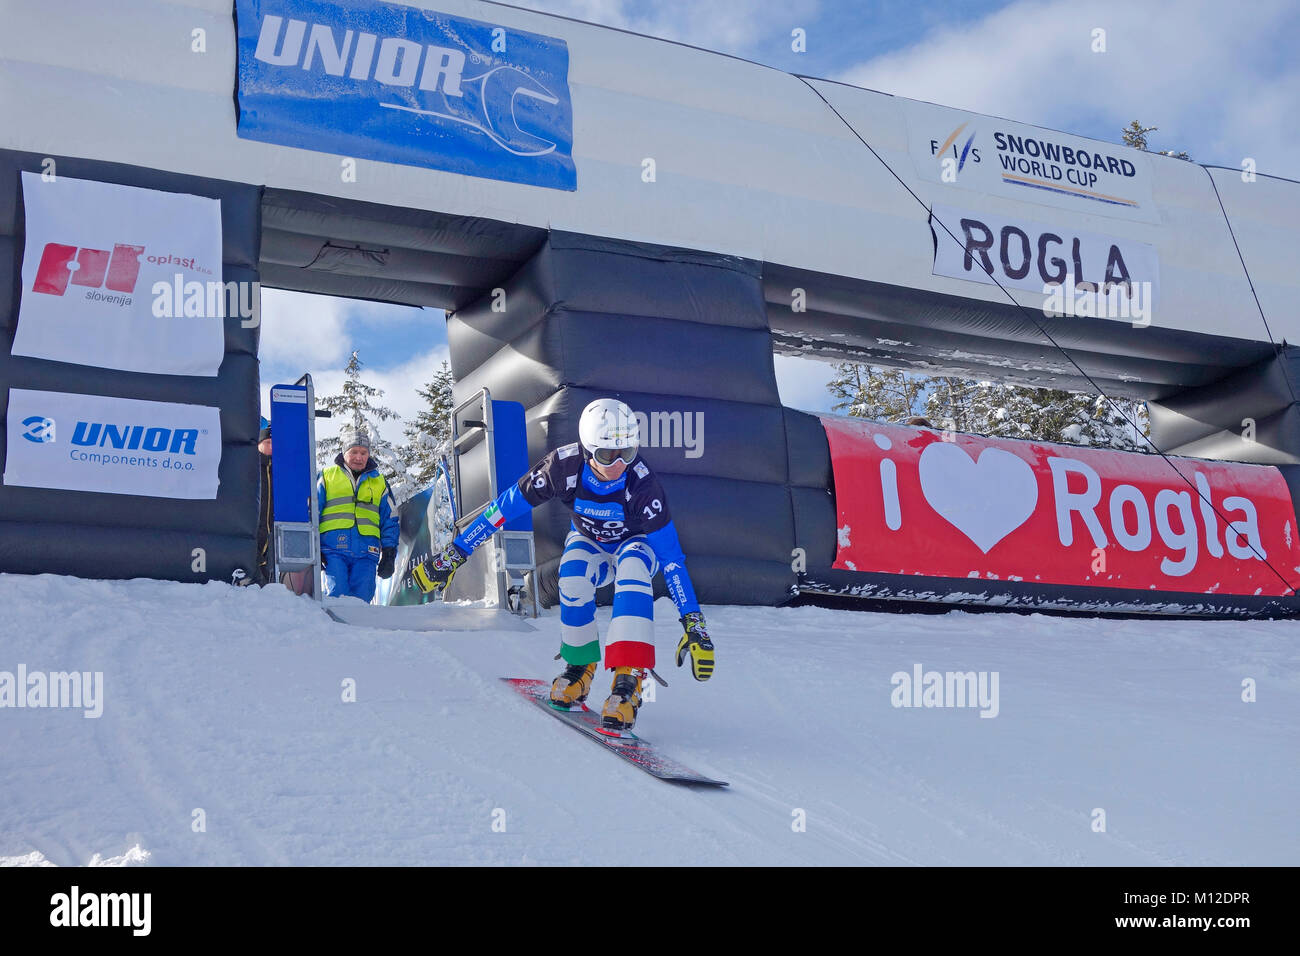 Snowboard competitor in parallel slalom has started  from the start gate. Rogla ski resort, Slovenia. - Stock Image